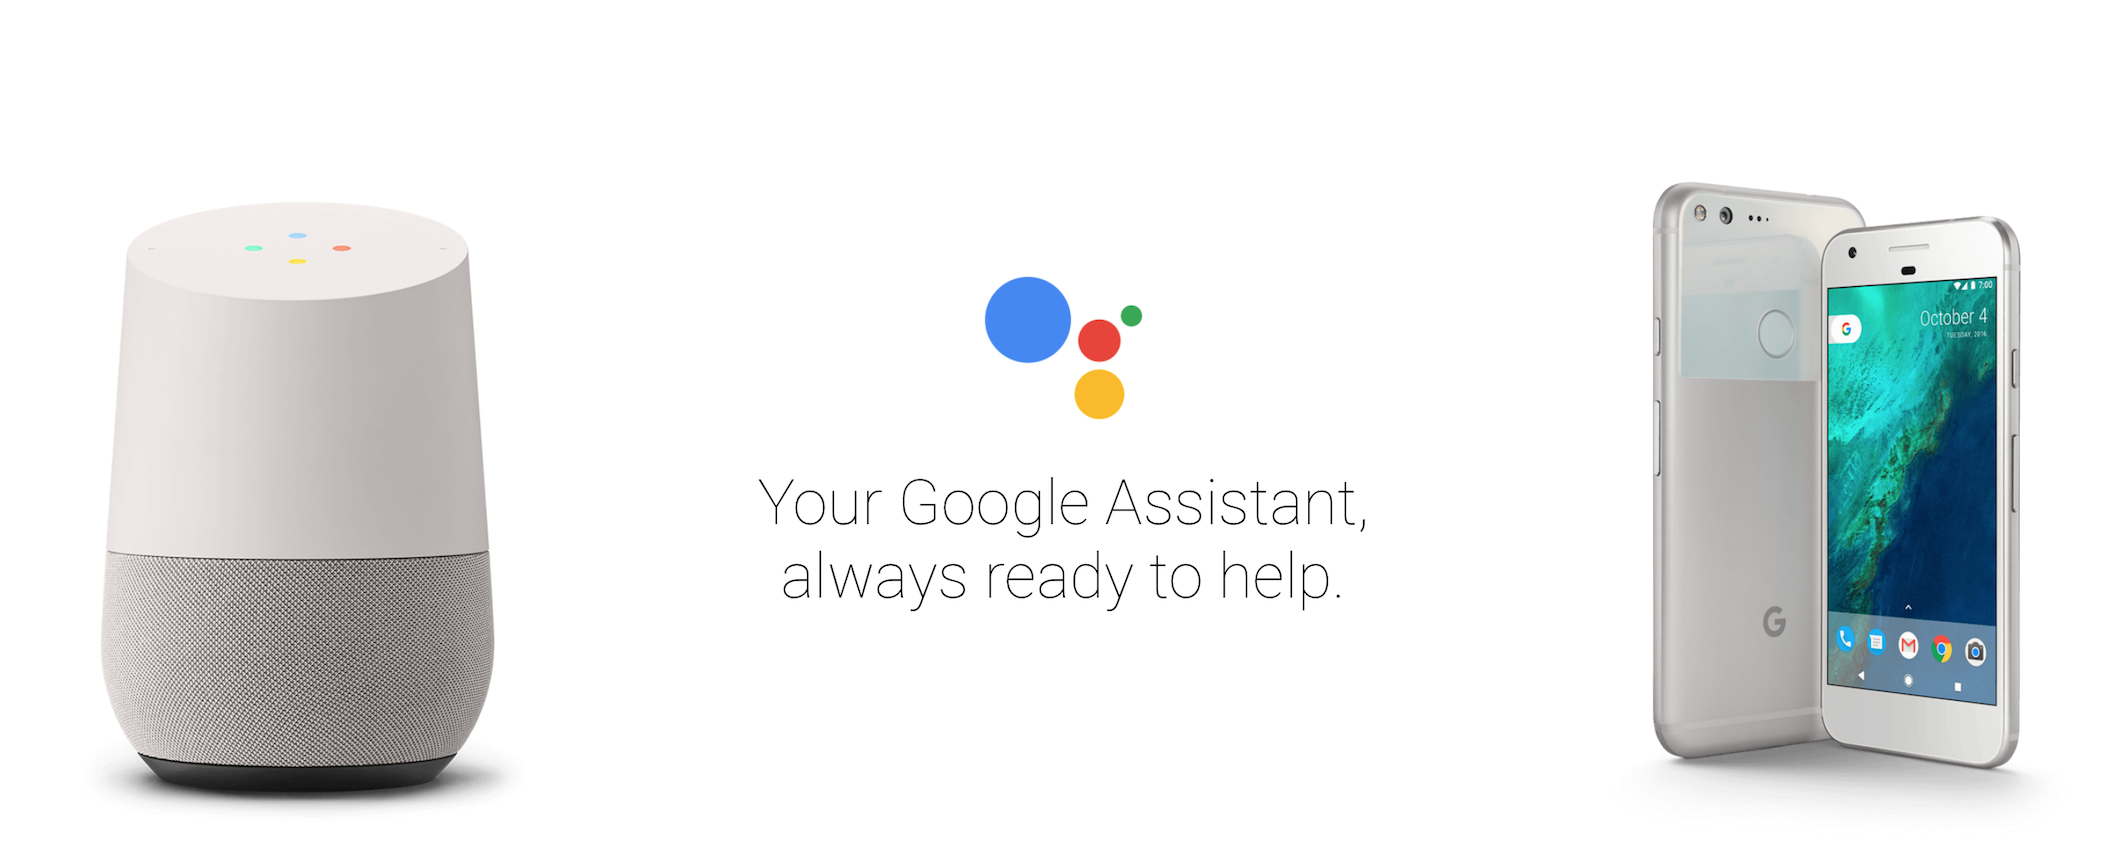 Duplex Points to the Future of Assistant and Google Itself!